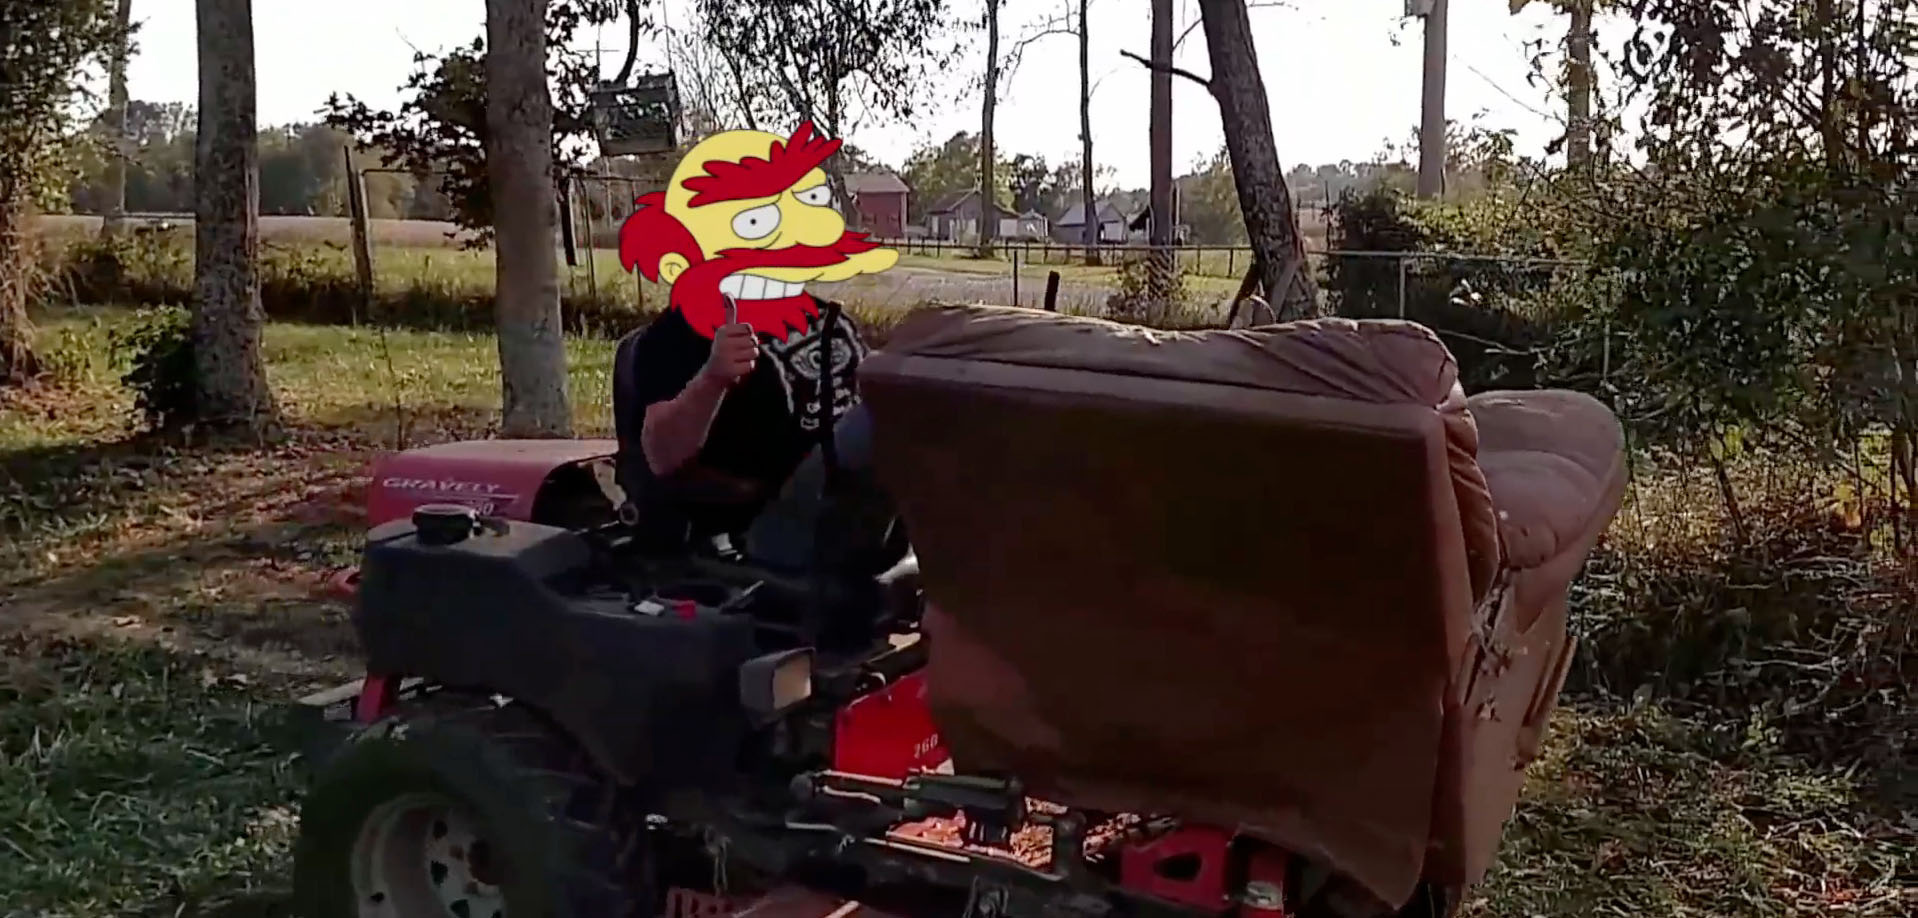 Thumbnail for Tractor Willie